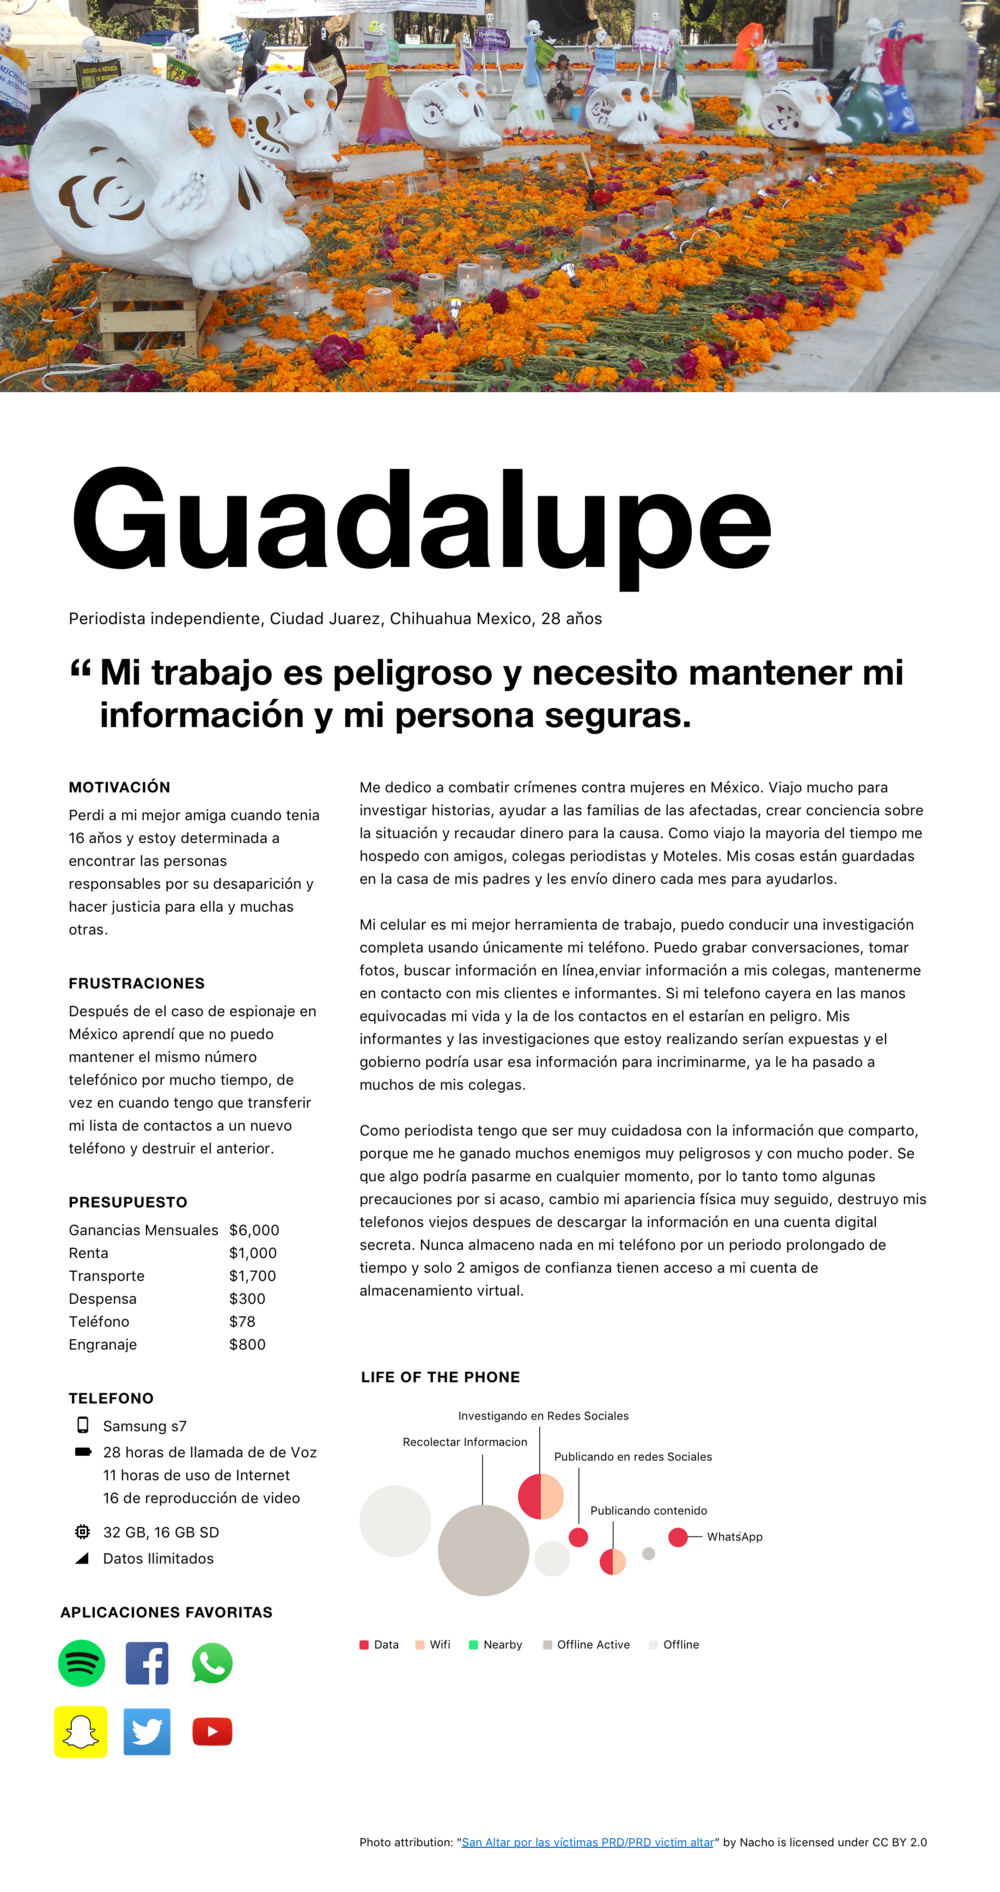 ux-persona-mexico-guadalupe@3x.png